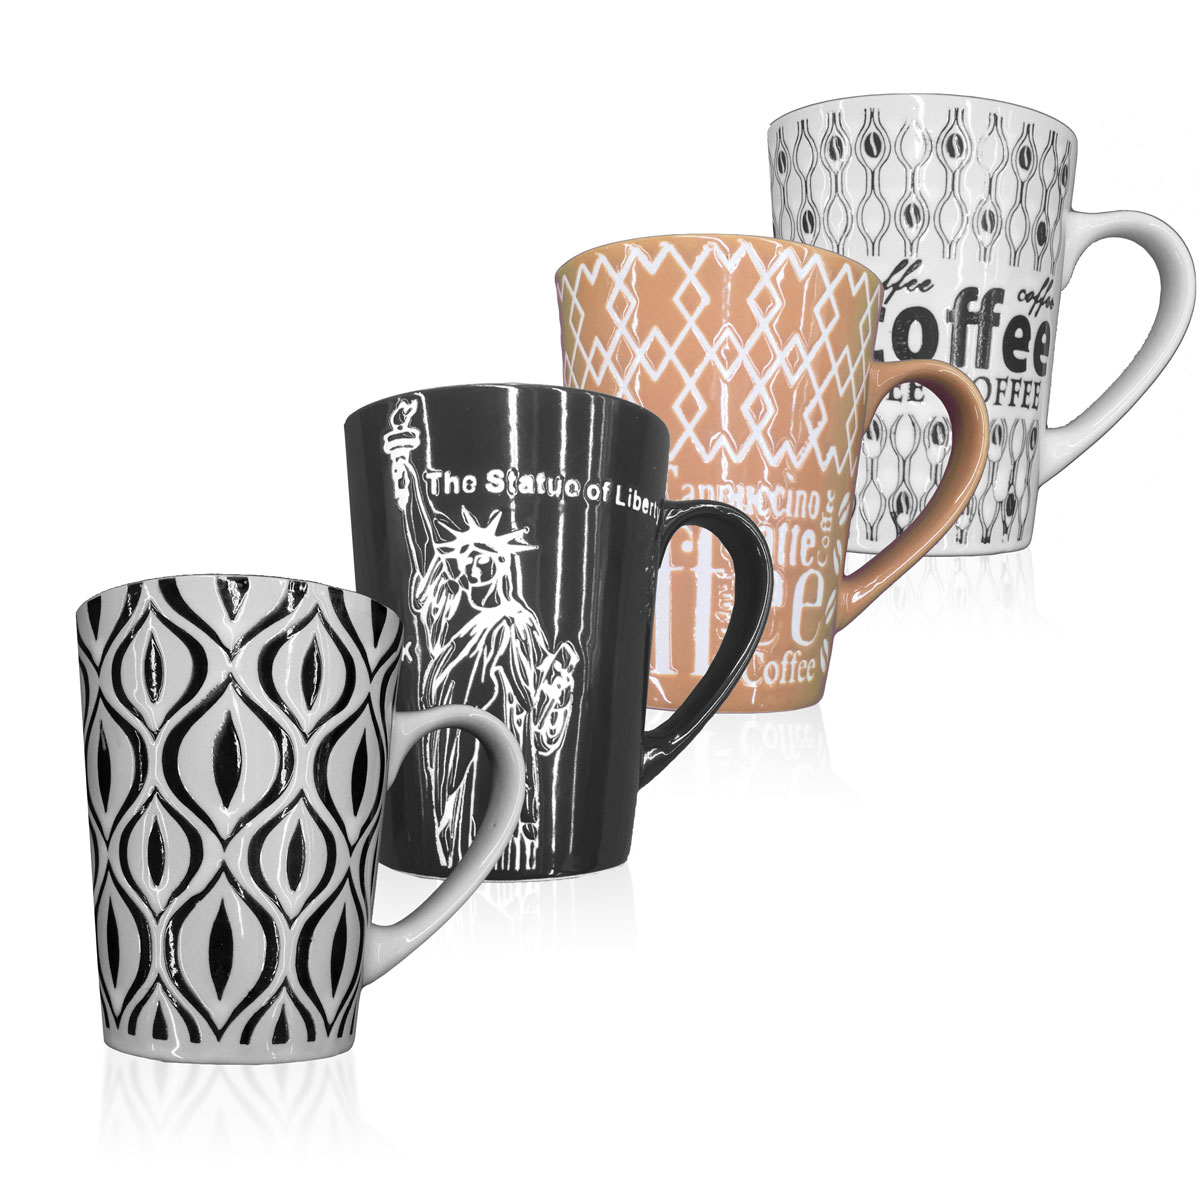 4 Pack: Decorative Ceramic High Quality Coffee Mugs with Handle - Assorted Styles парафин oneball x wax 5 pack assorted